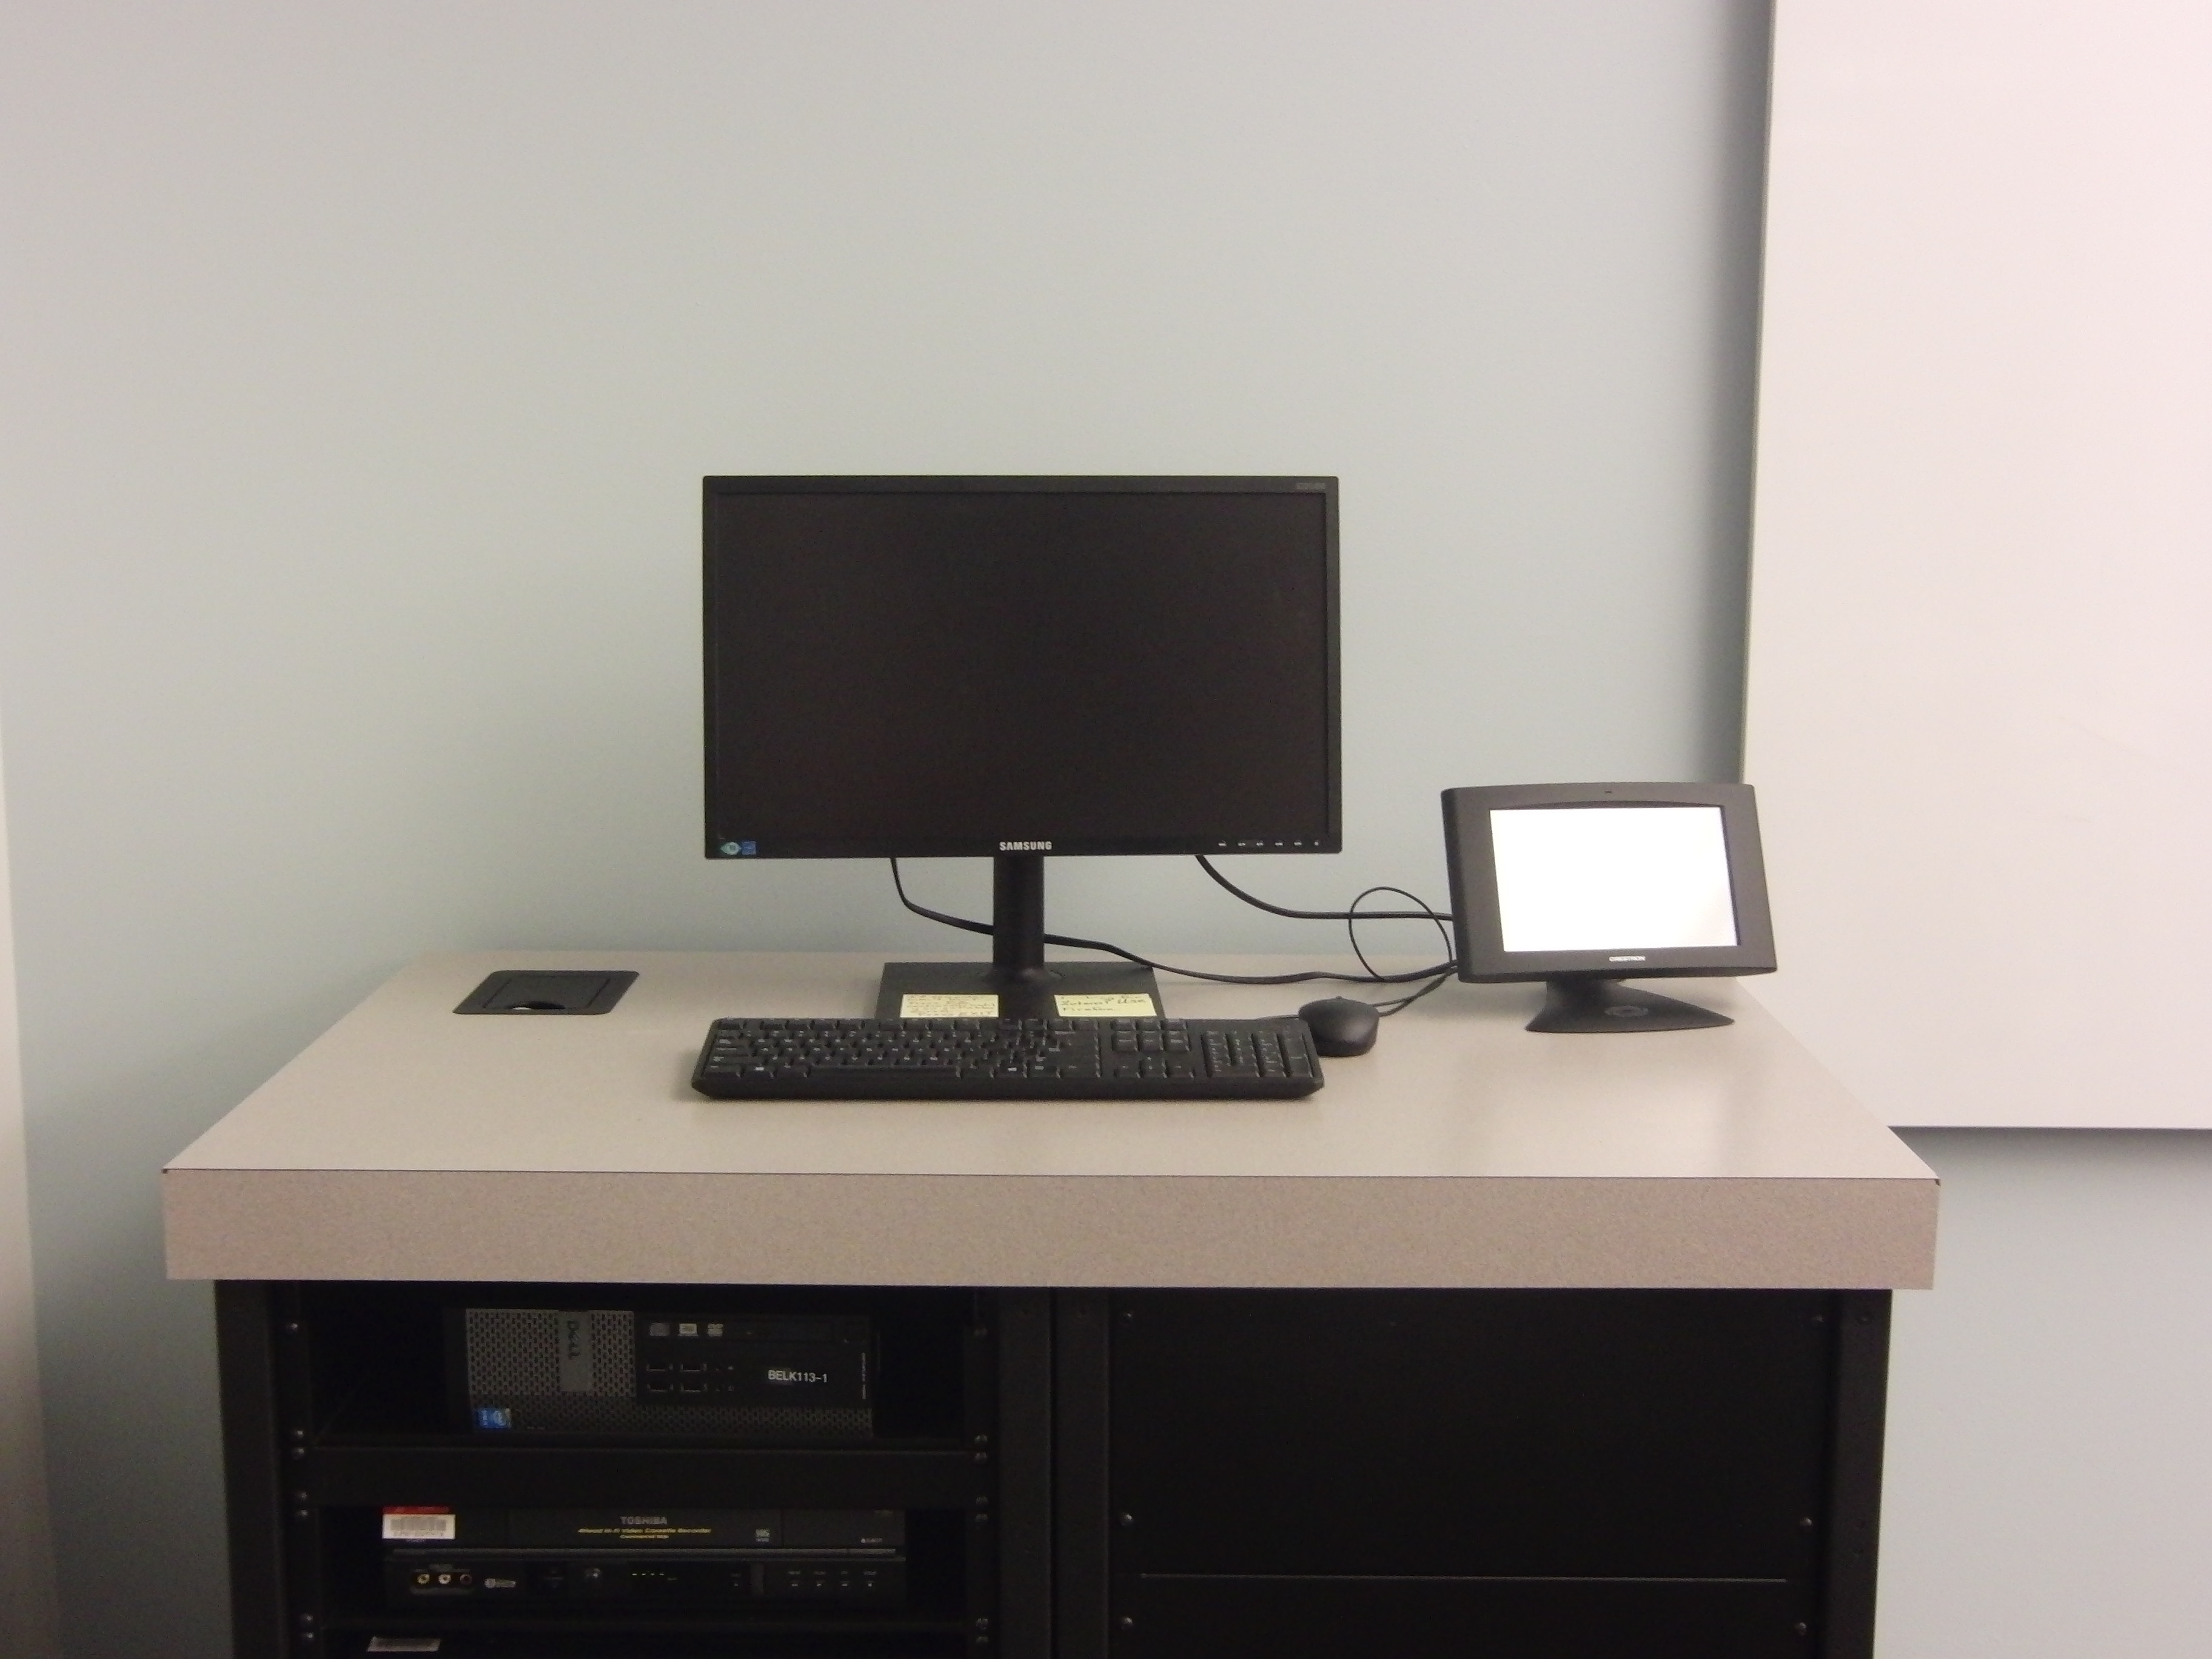 A photo of the desktop computer and the touch panel control.